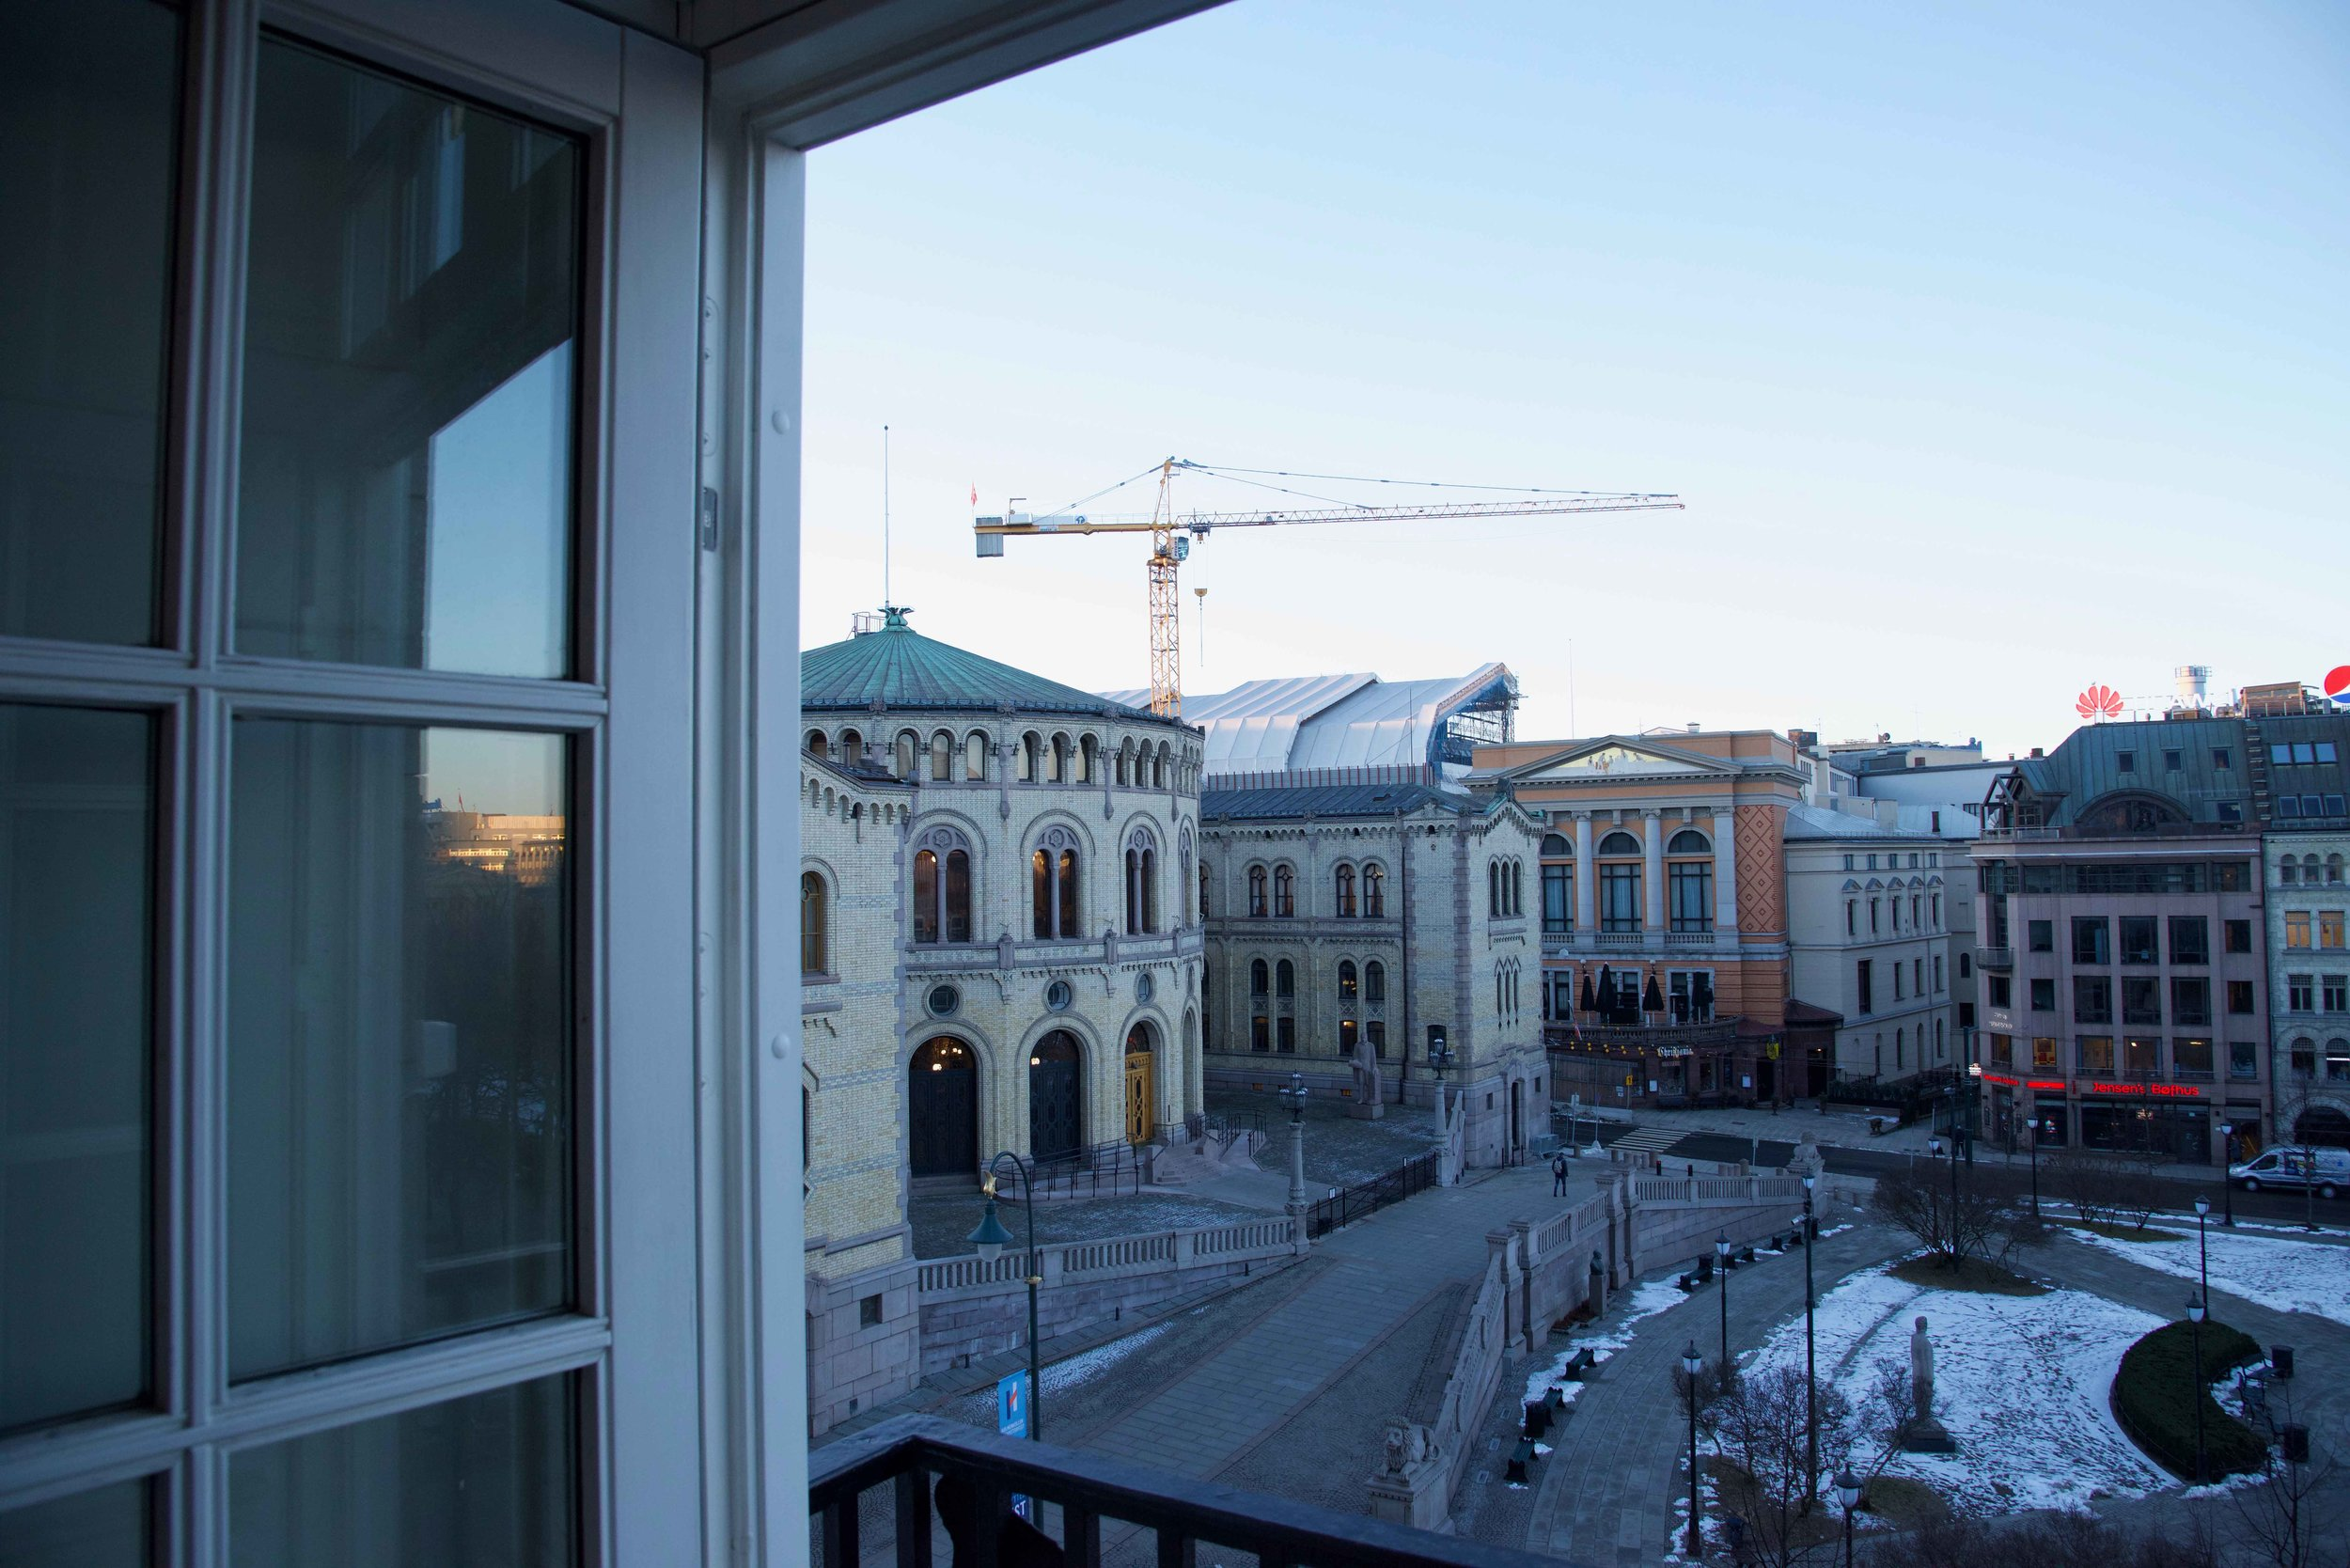 Superior double room, room with a view, Grand Hotel Oslo, Norway. Image©thingstodot.com